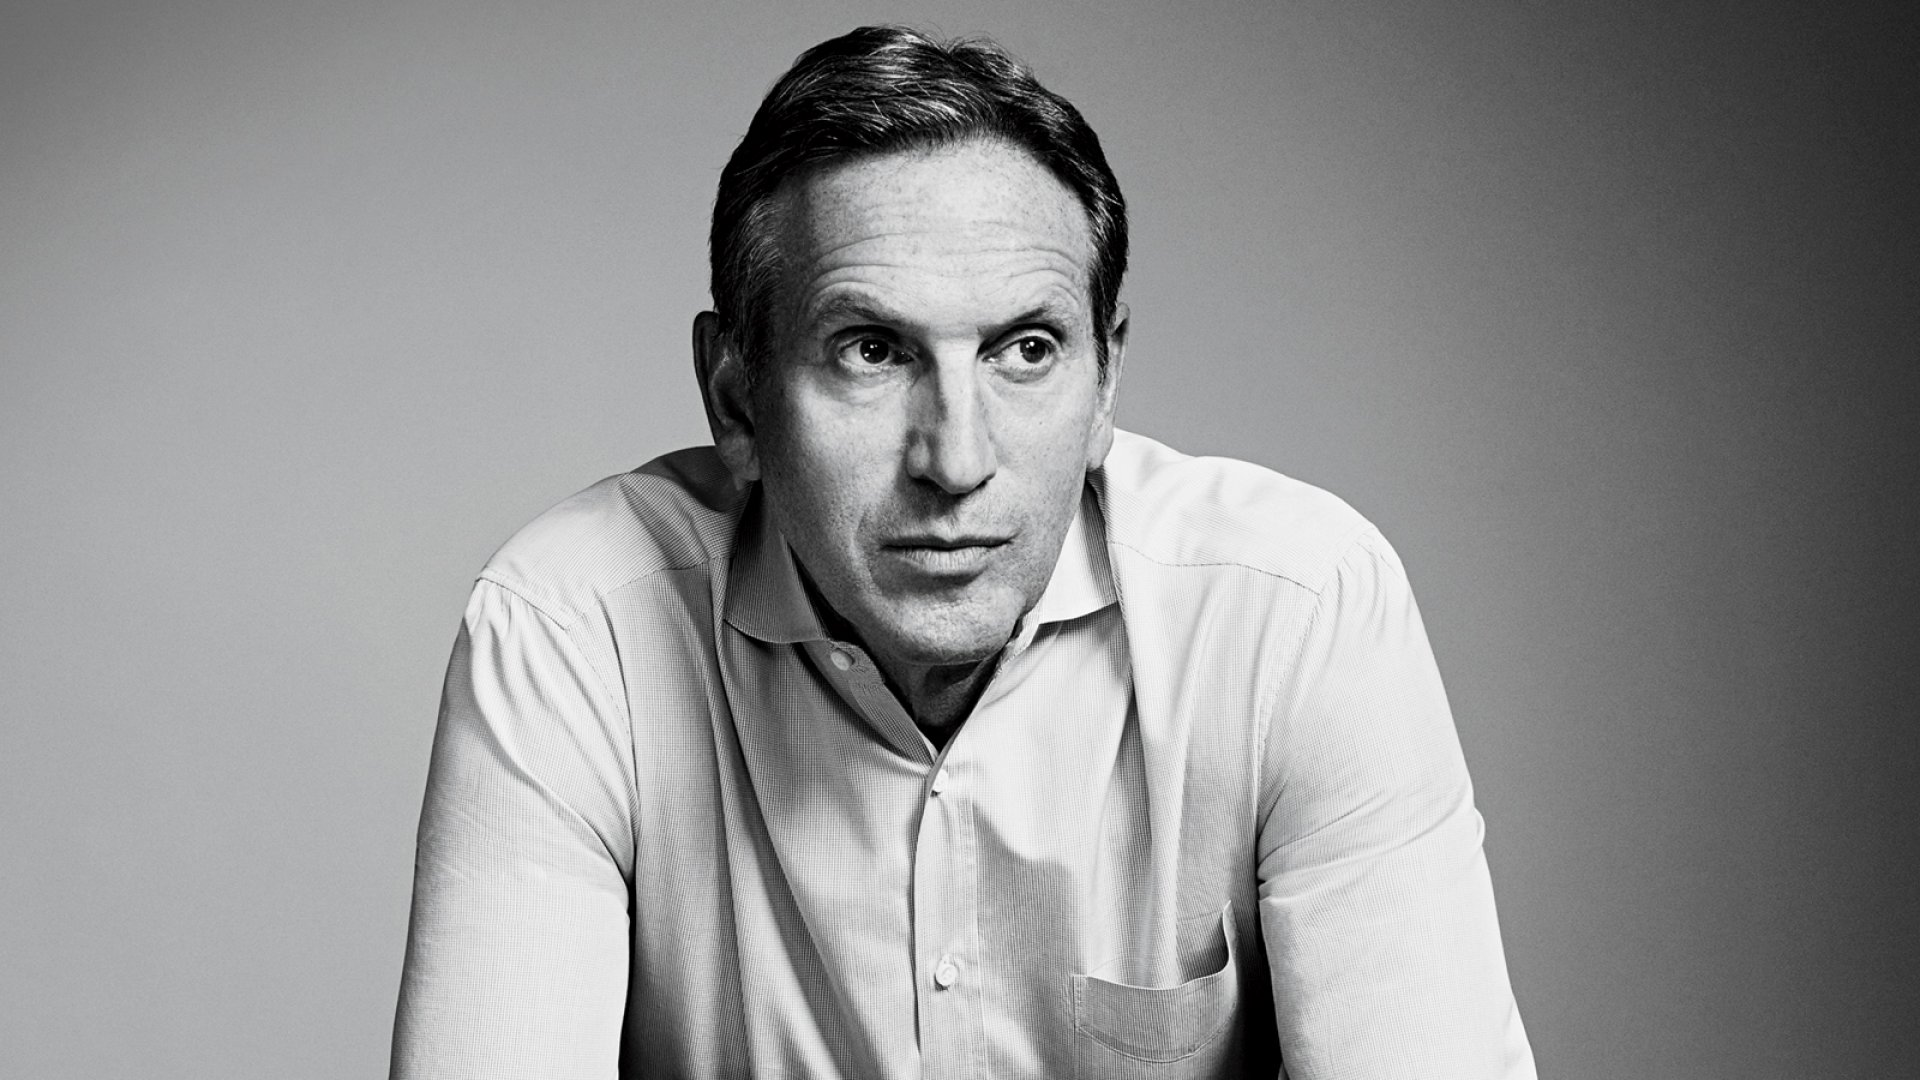 Starbucks's Howard Schultz Goes Where CEOs Fear to Tread: Race Relations